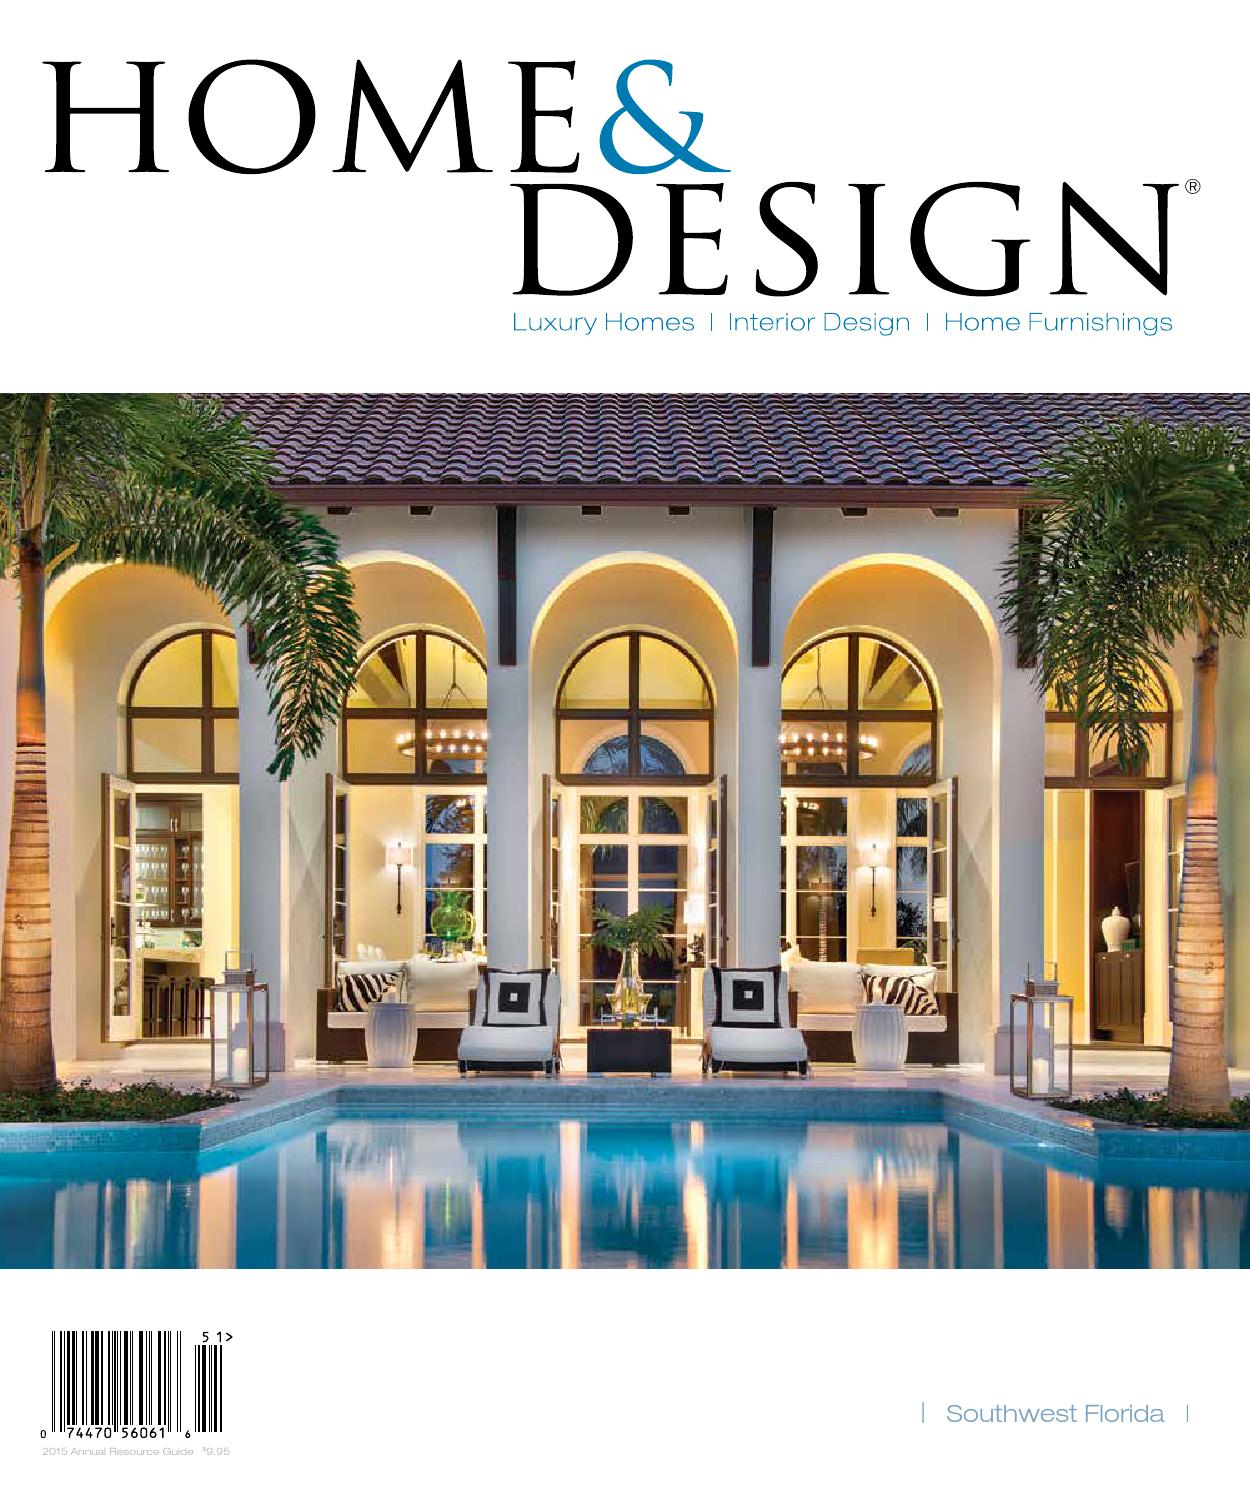 Home & Design Magazine | Annual Resource Guide 2015 ...